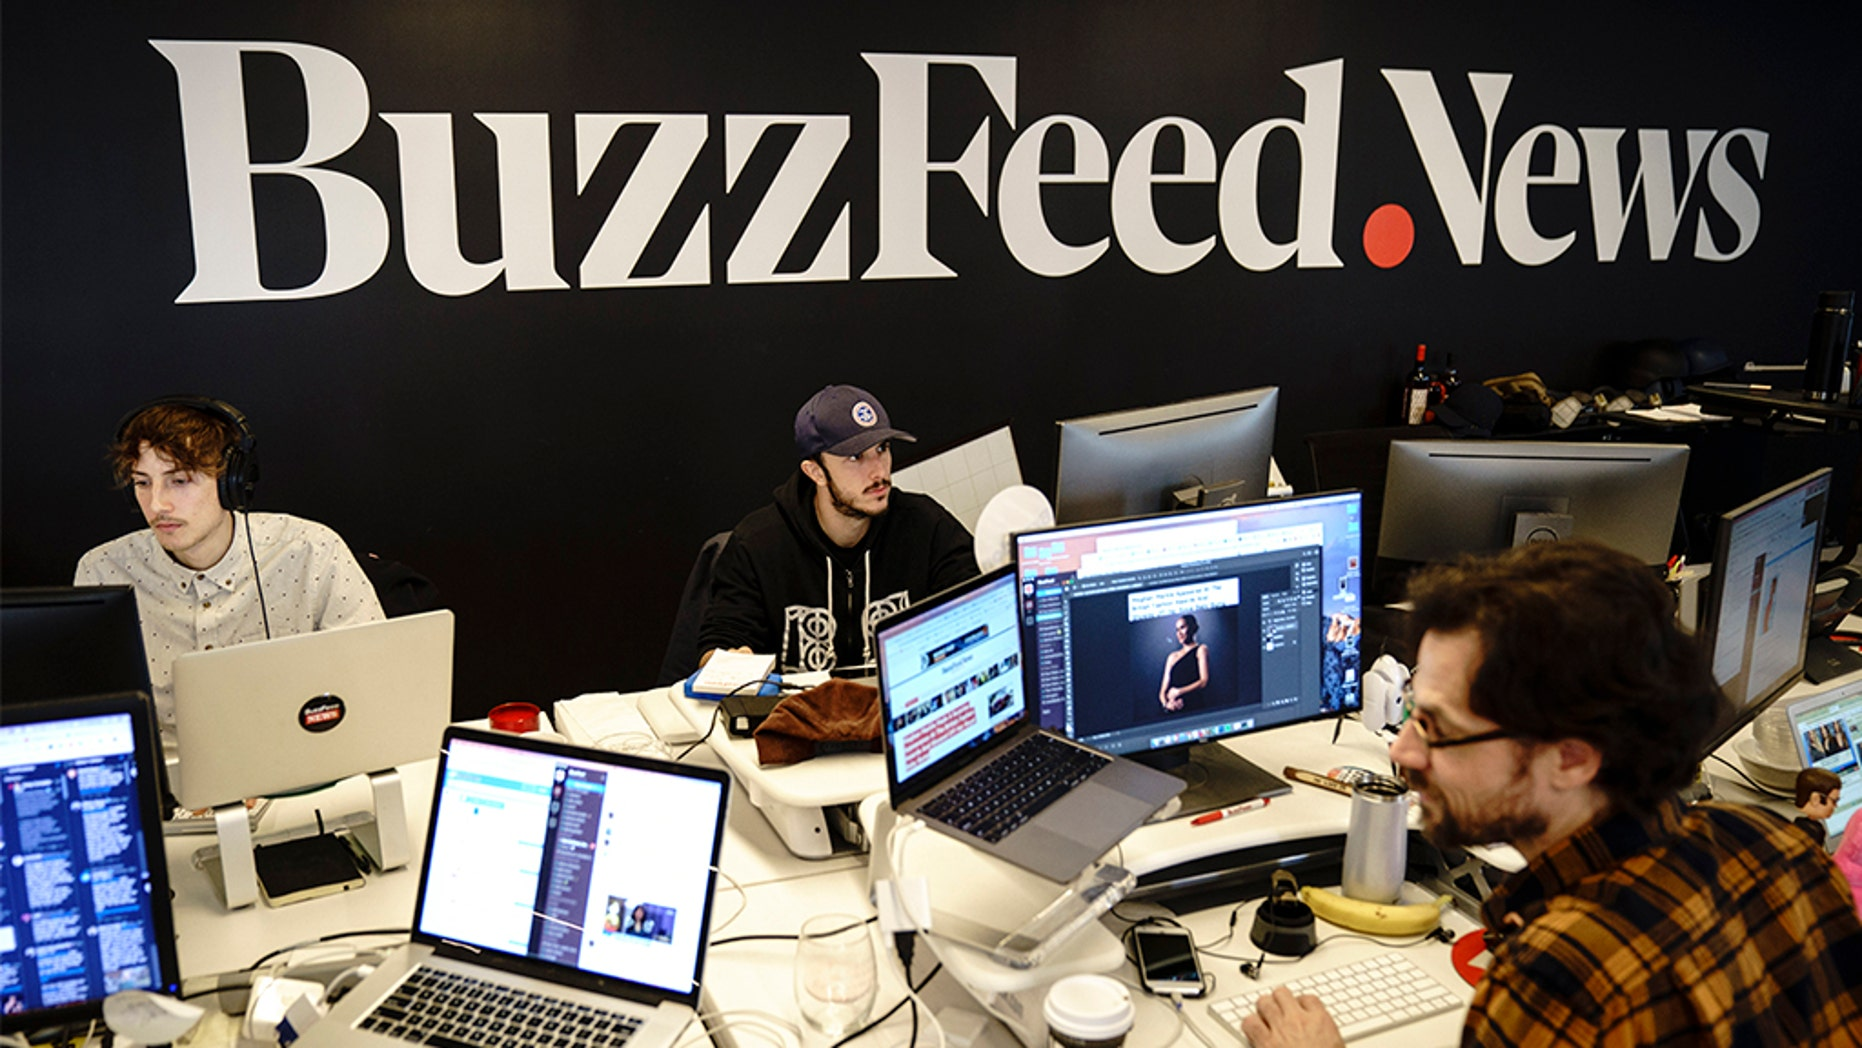 NEW YORK, NY - BuzzFeed is dropping out of the White House travel pool. Members of the BuzzFeed News team are seen at their desks at BuzzFeed headquarters, December 11, 2018 in New York City. (Photo by Drew Angerer/Getty Images)